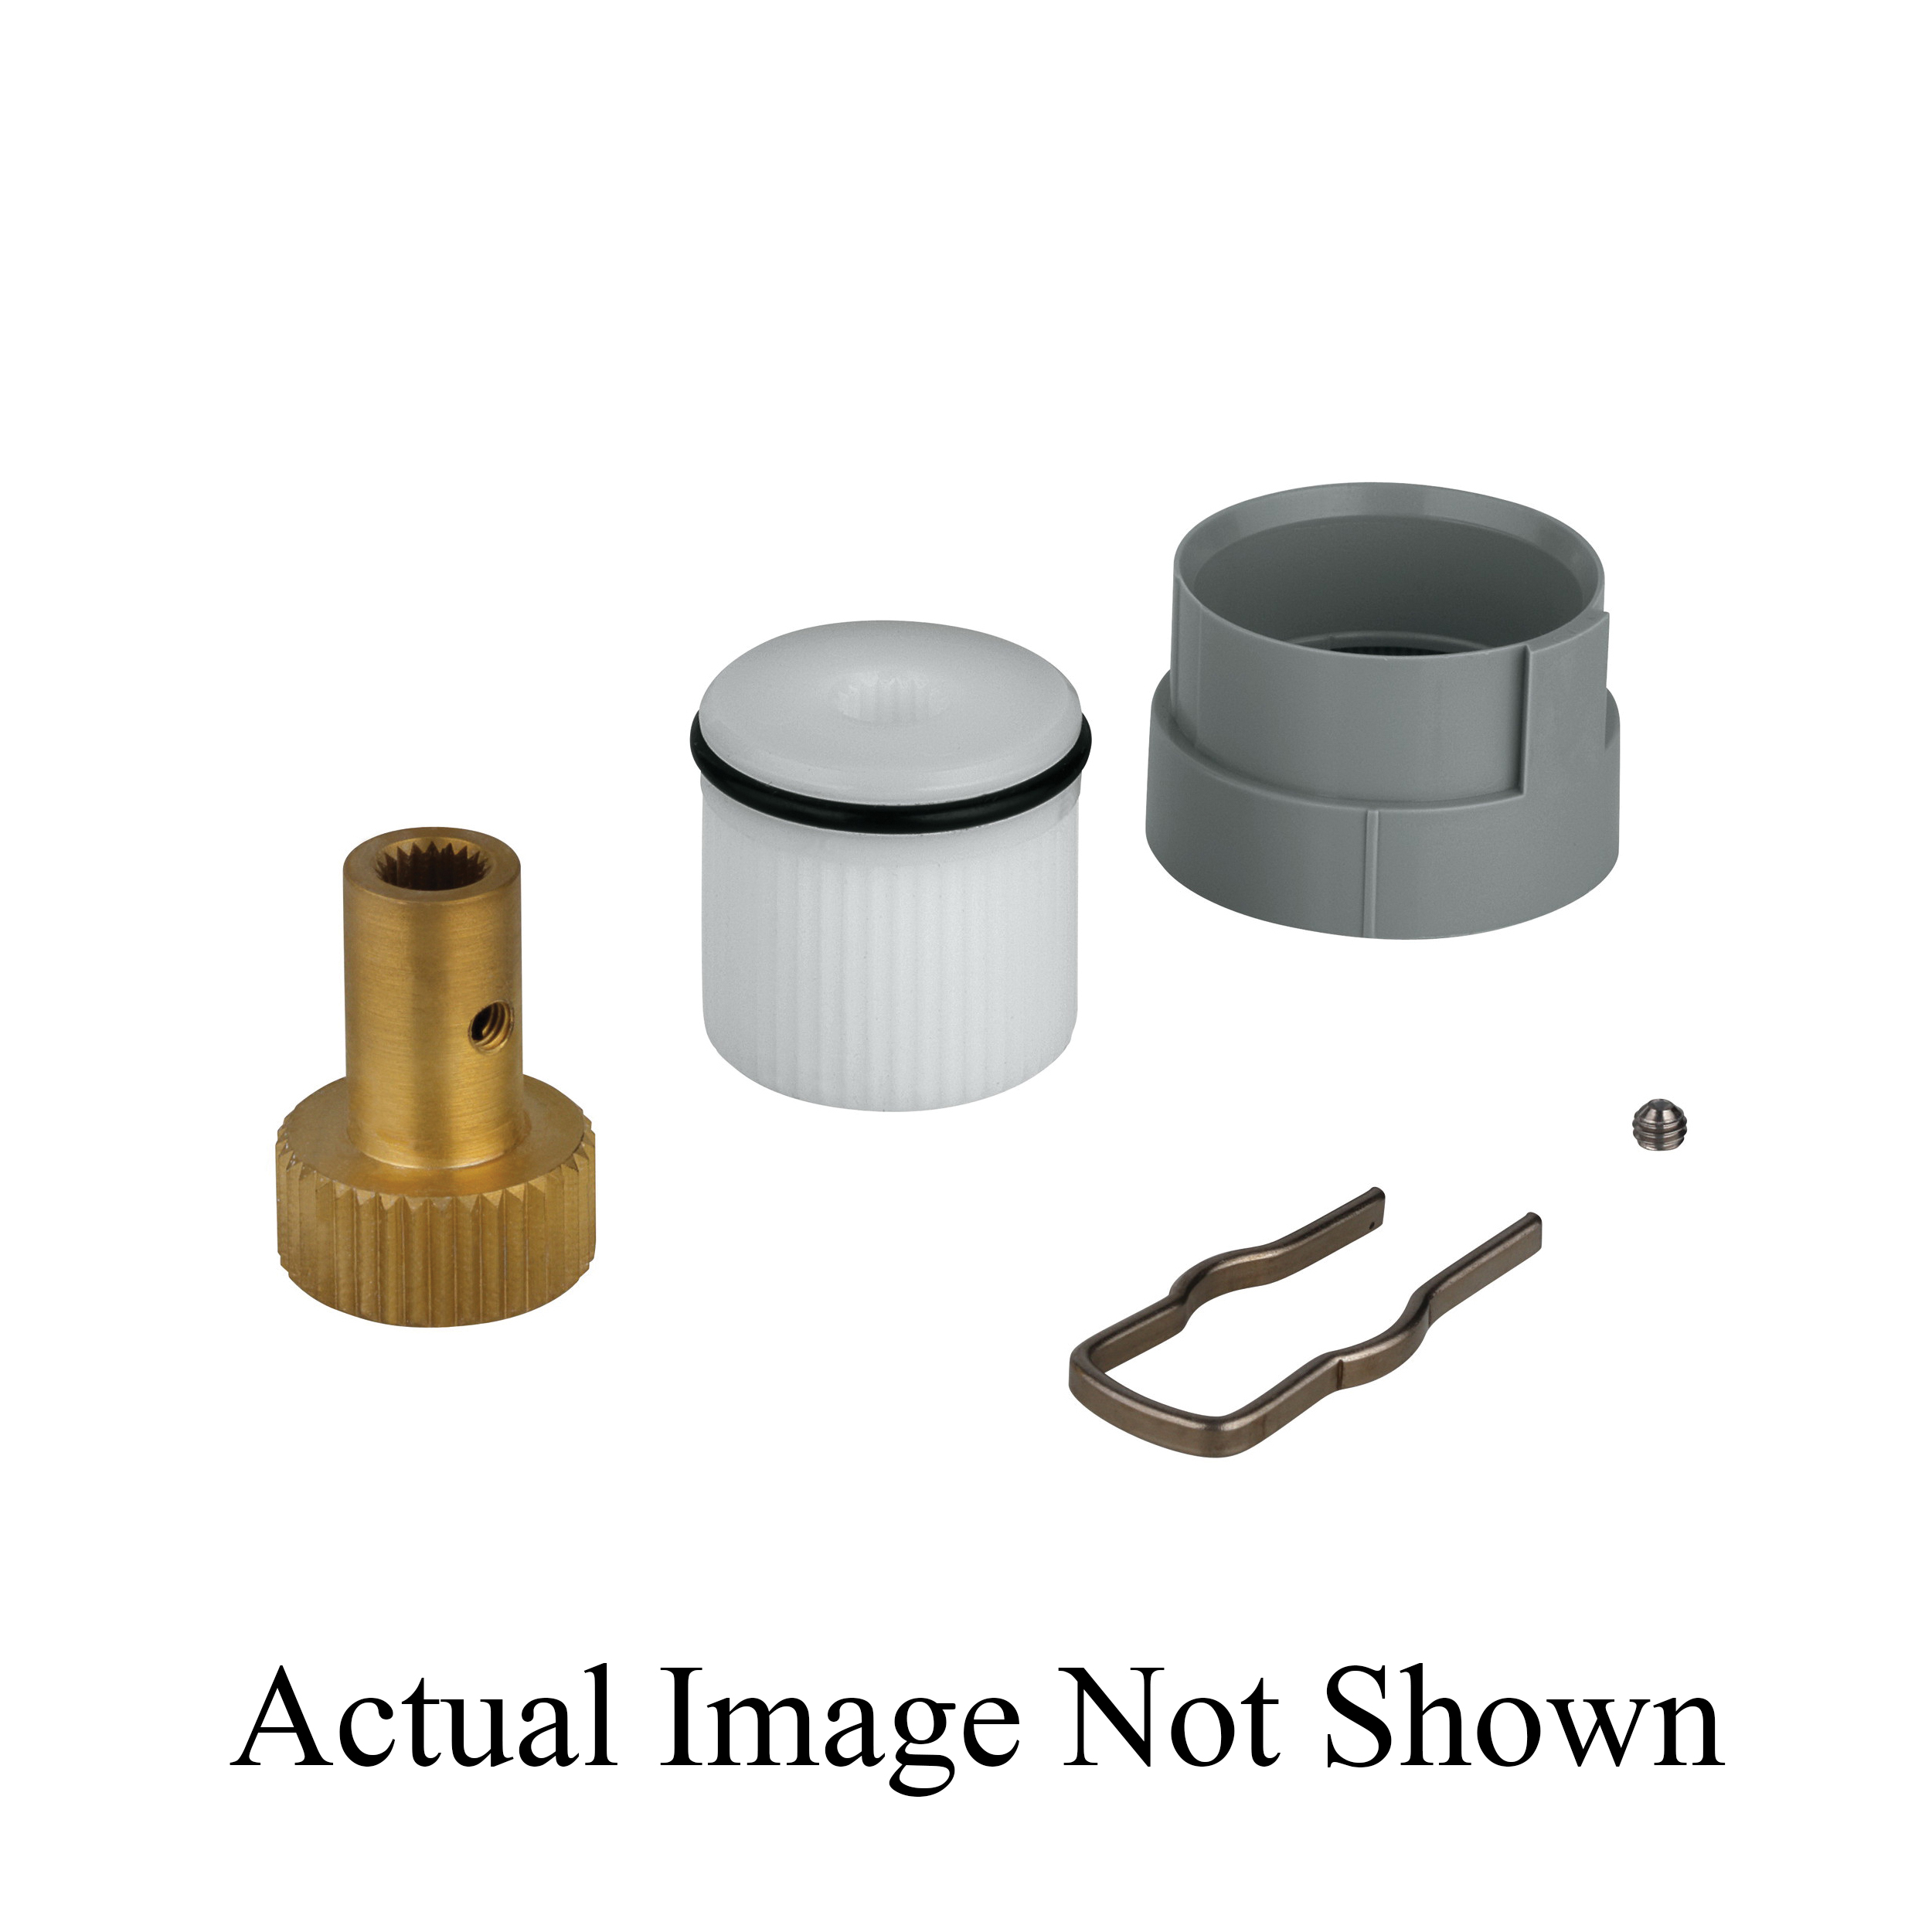 GROHE 47725000 Handle Adapter, For Use With 34331000 and 34397000 Central Thermostat Mixer, Import